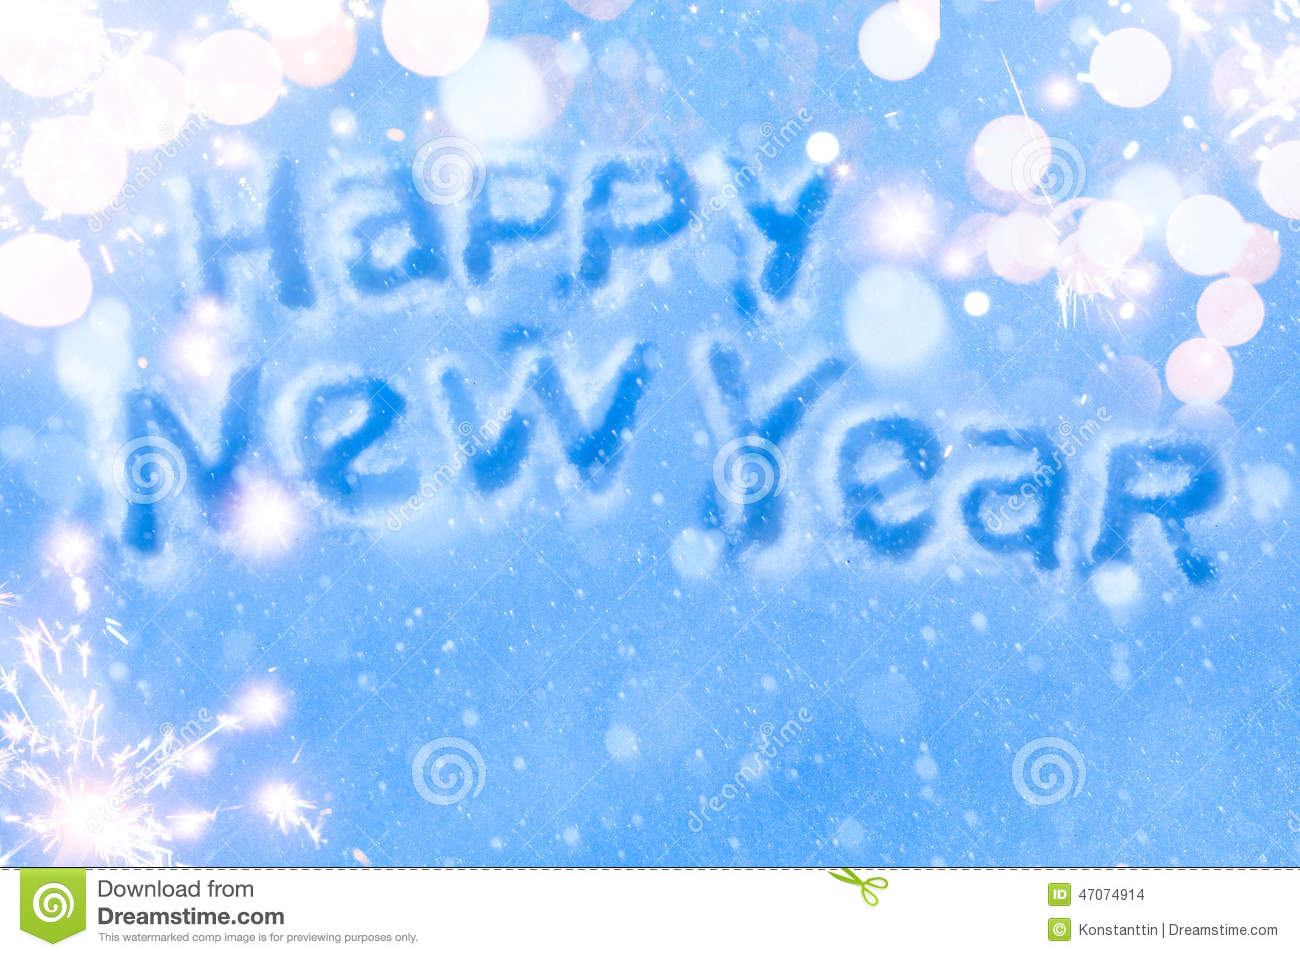 Art Happy New Year Greeting-Karte Stockfoto - Bild von vorabend ...